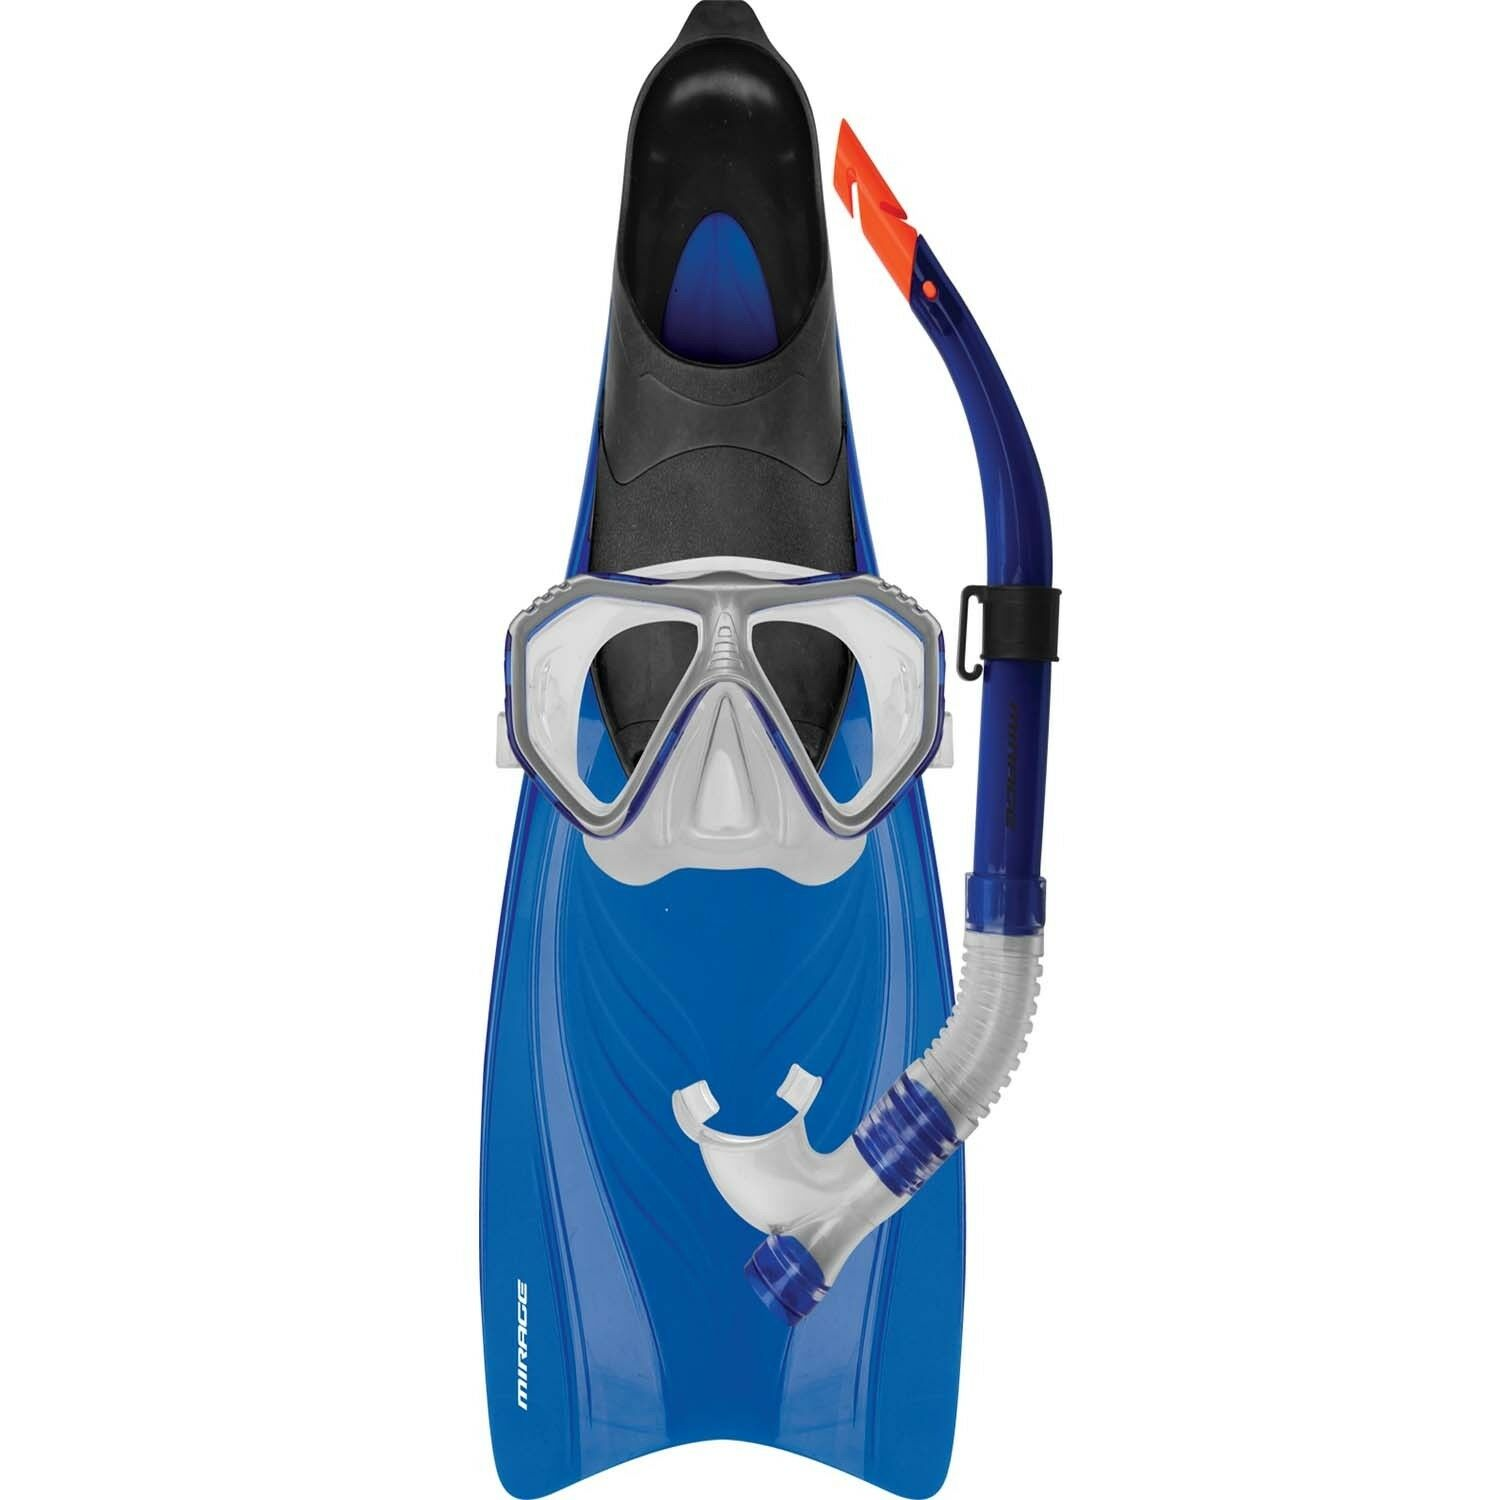 Mirage Bahamas ADULT Snorkel Set Includes Flipper Snorkel Mask blueE M L